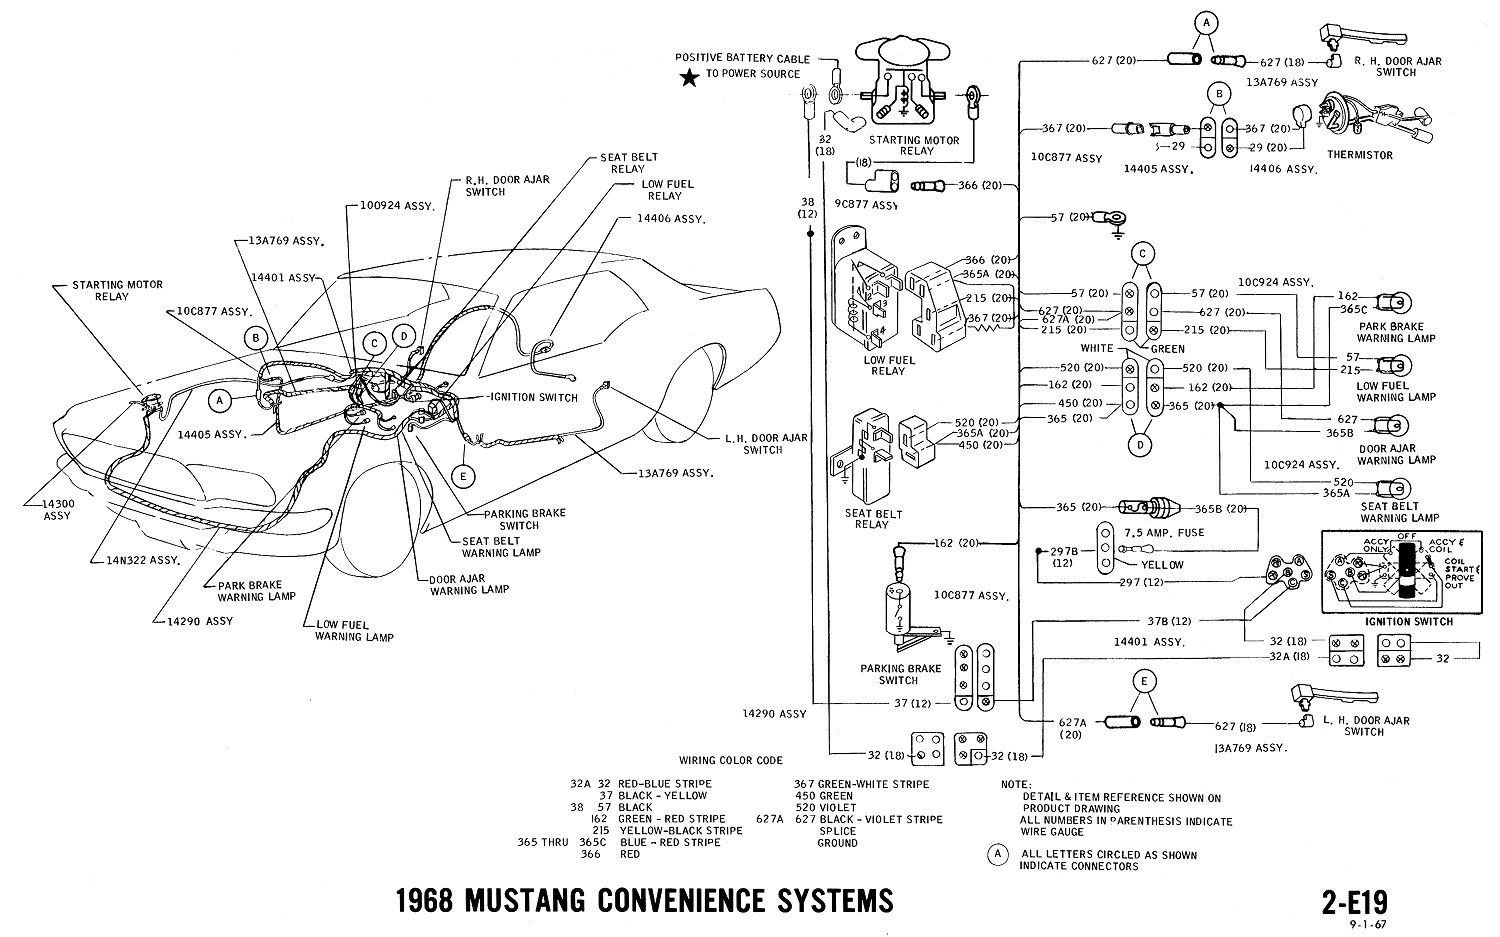 1968 mustang wiring diagram convenience systems 1968 mustang wiring diagrams and vacuum schematics average joe 1969 mustang wiring harness diagram at alyssarenee.co